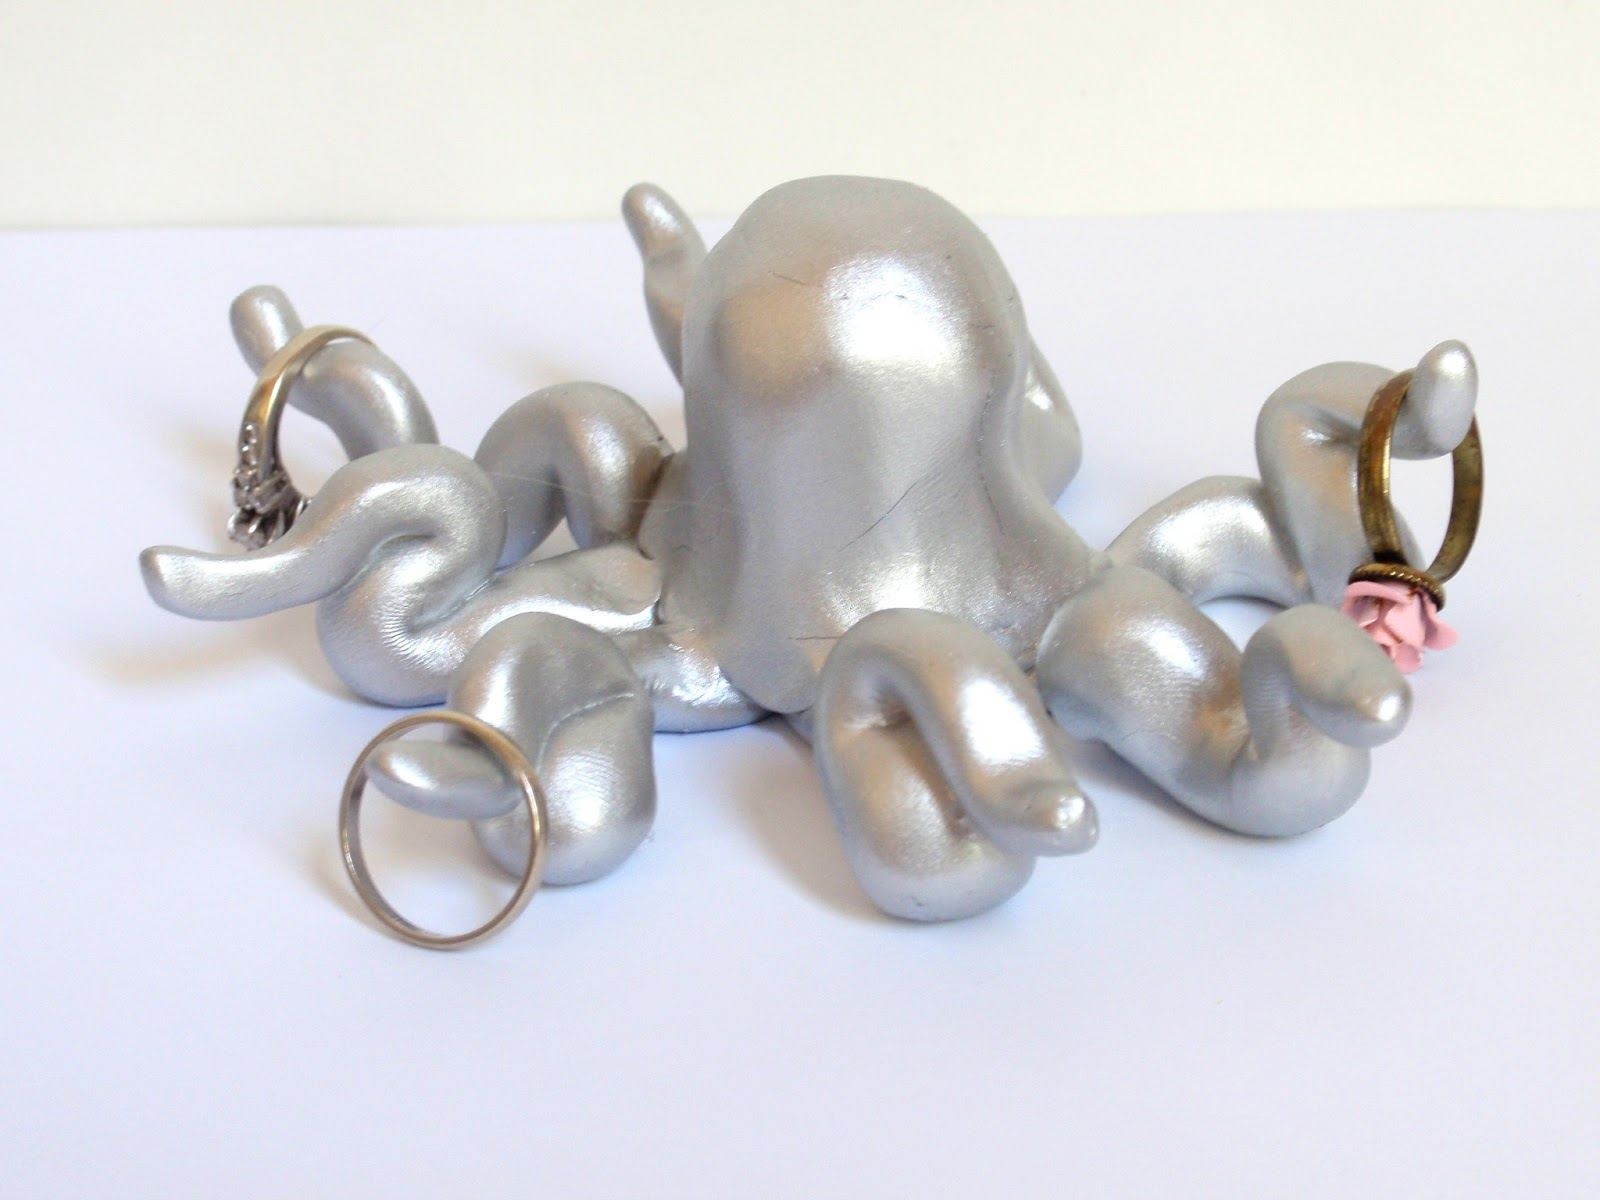 One of the cute ways to store your jewelry is with this silver shining octopus ring holder.